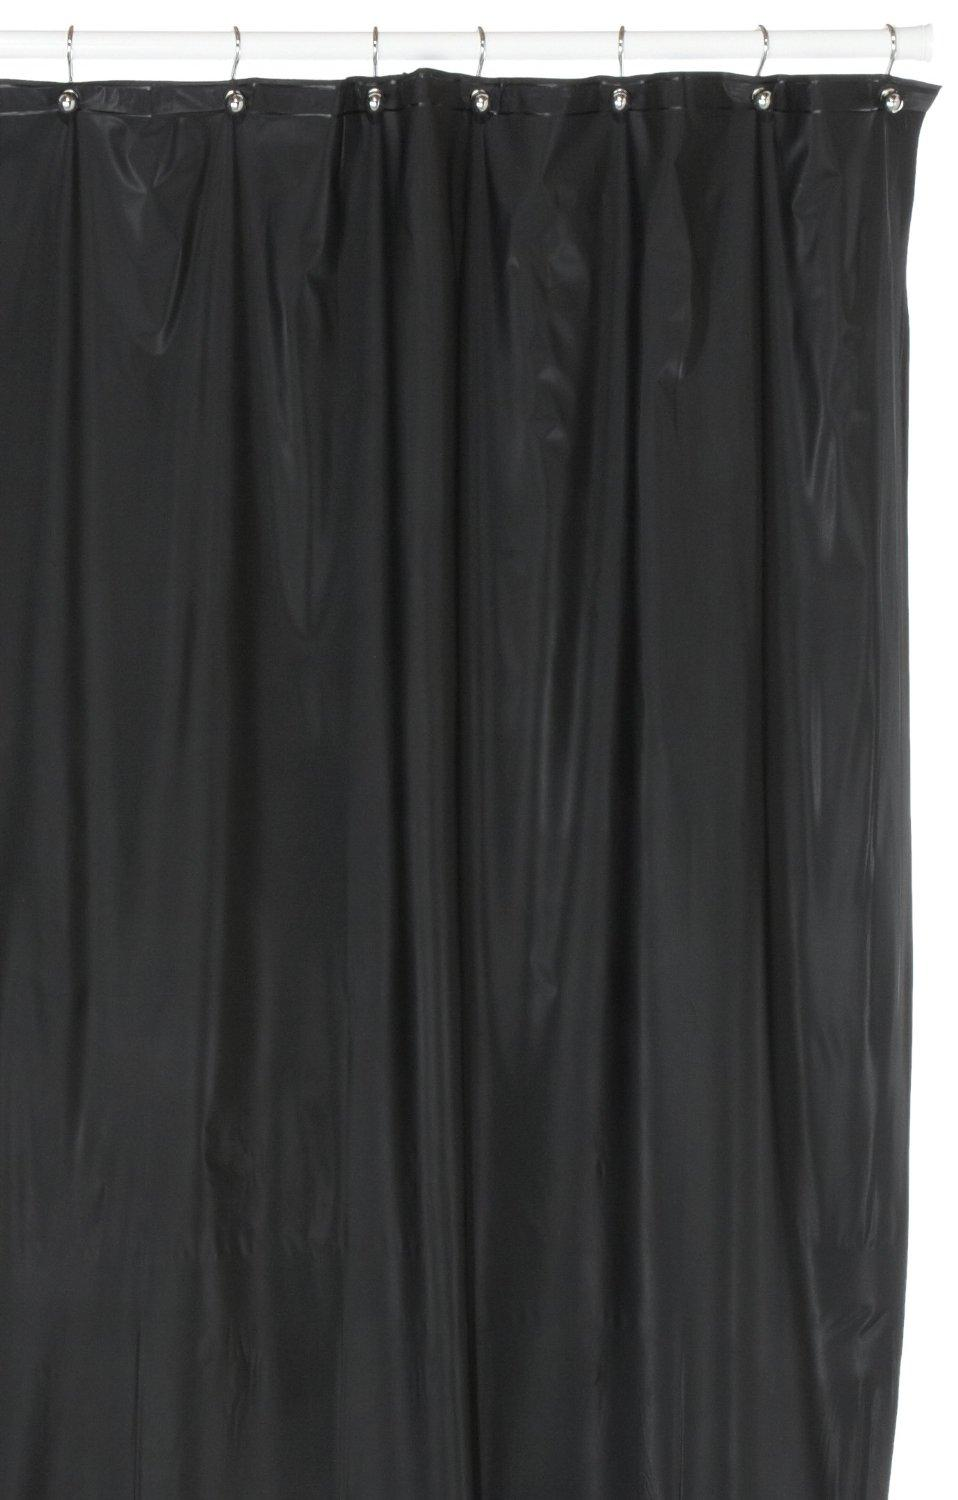 Hotel Quality 8 Gauge Vinyl Shower Curtain Liner Black